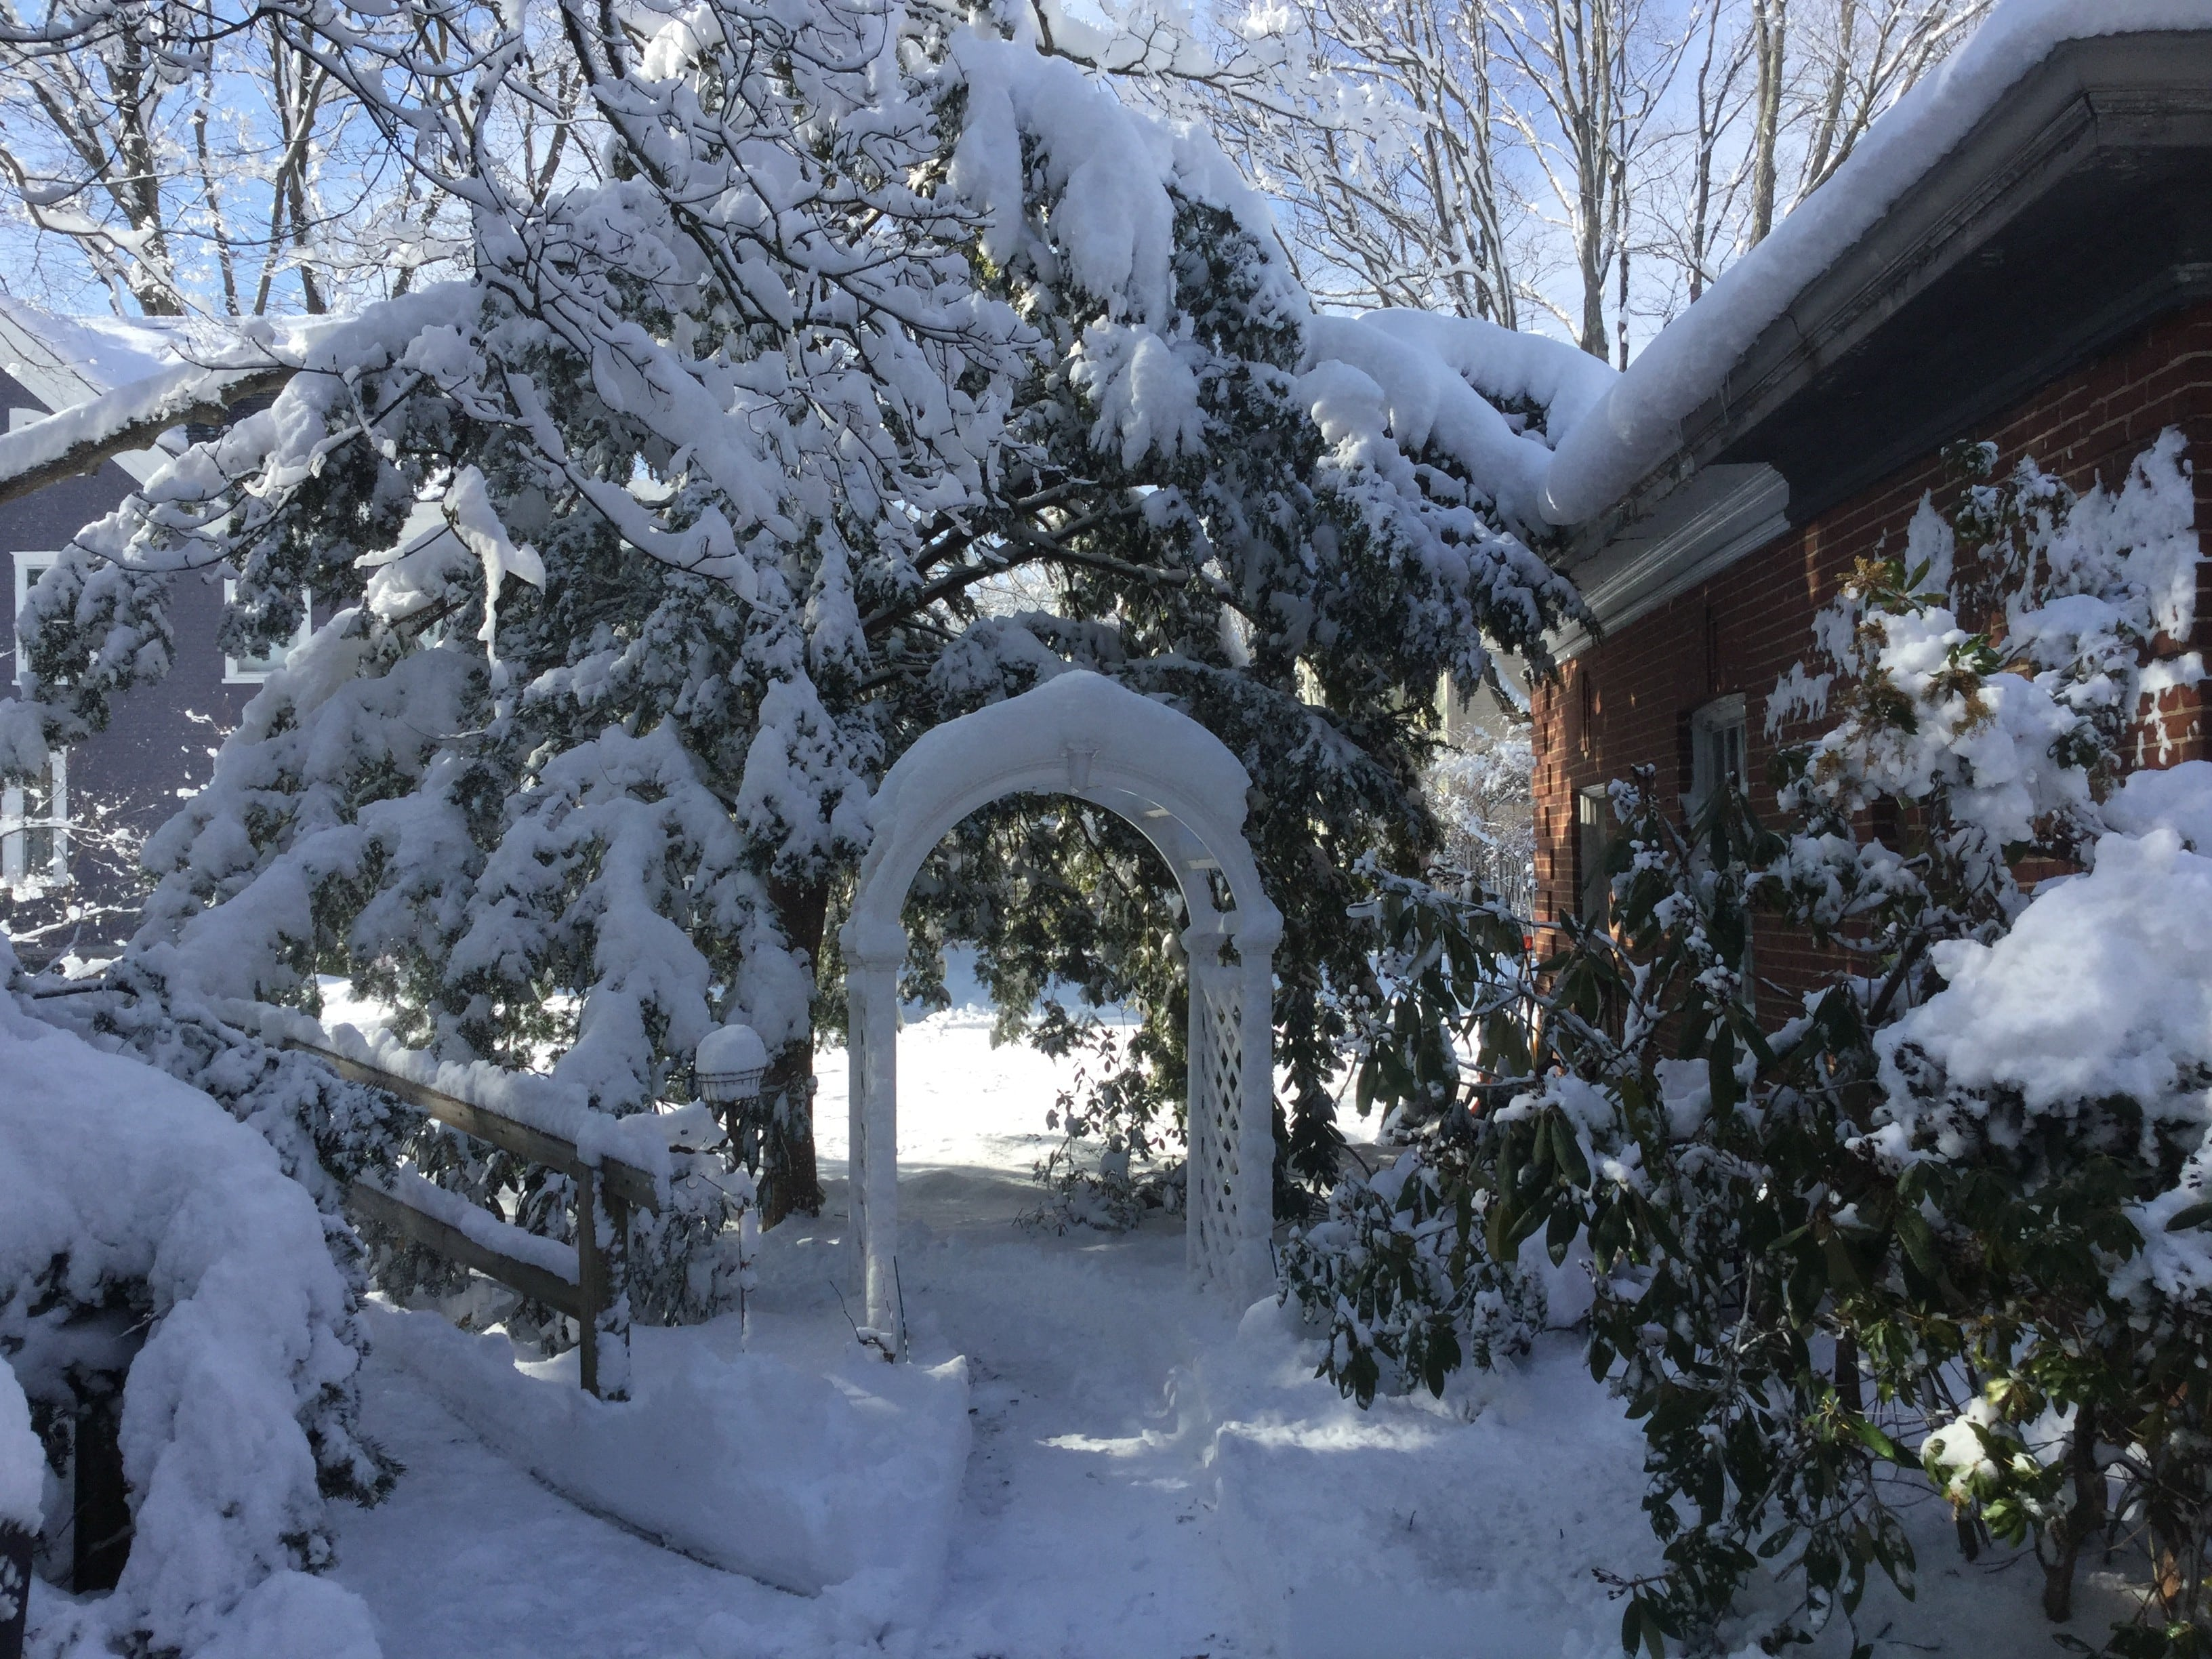 Here is a view of a snow covered walkway at our hotel near seacoast nh.